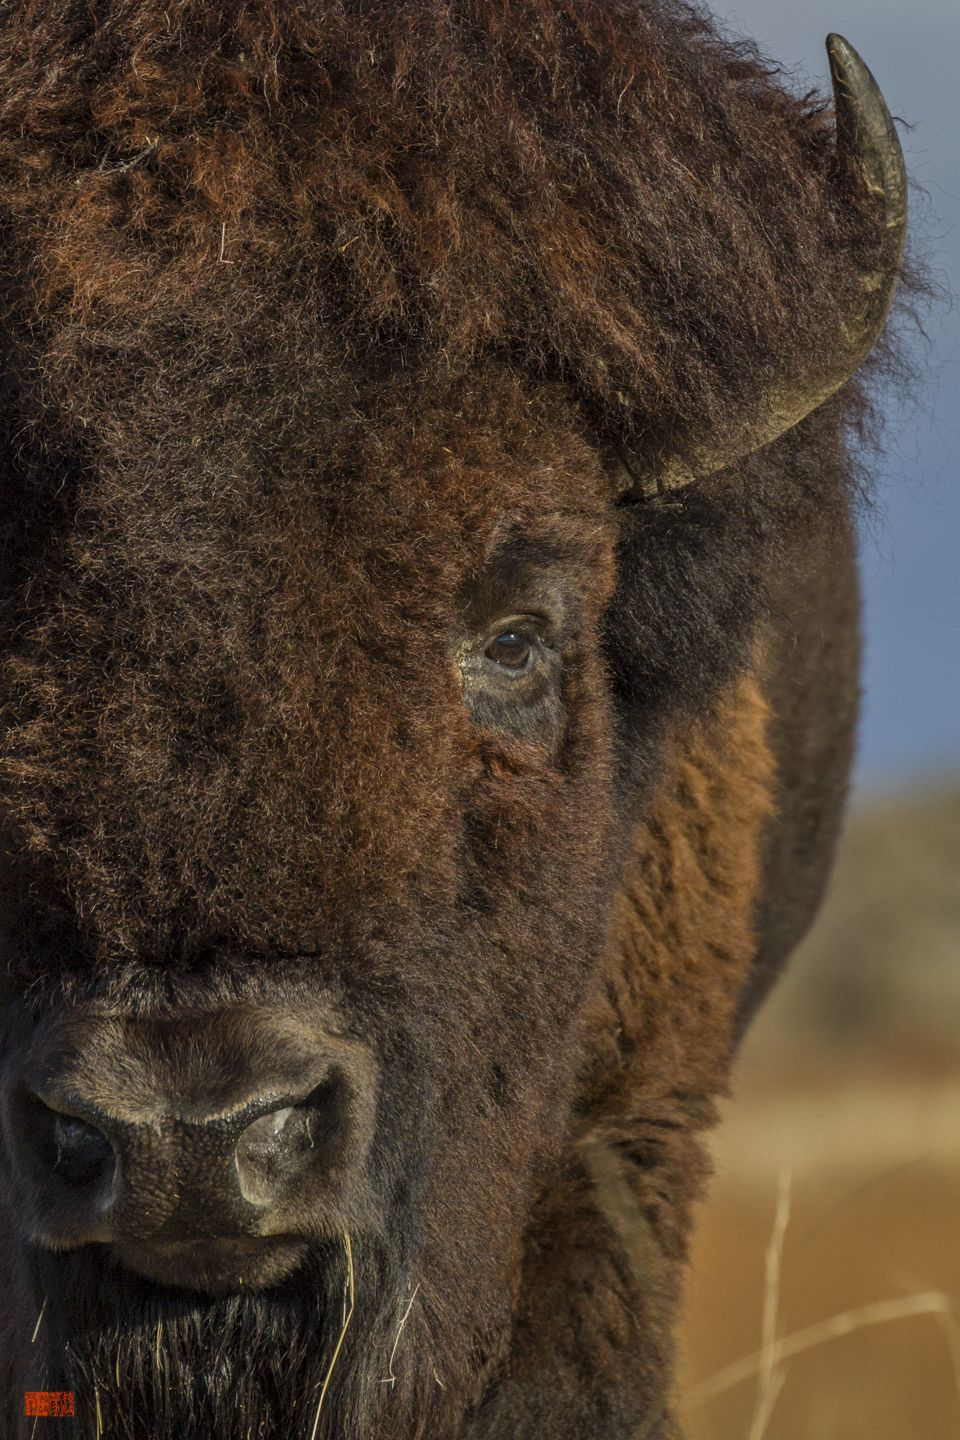 The American bison (Bison bison), also commonly known as